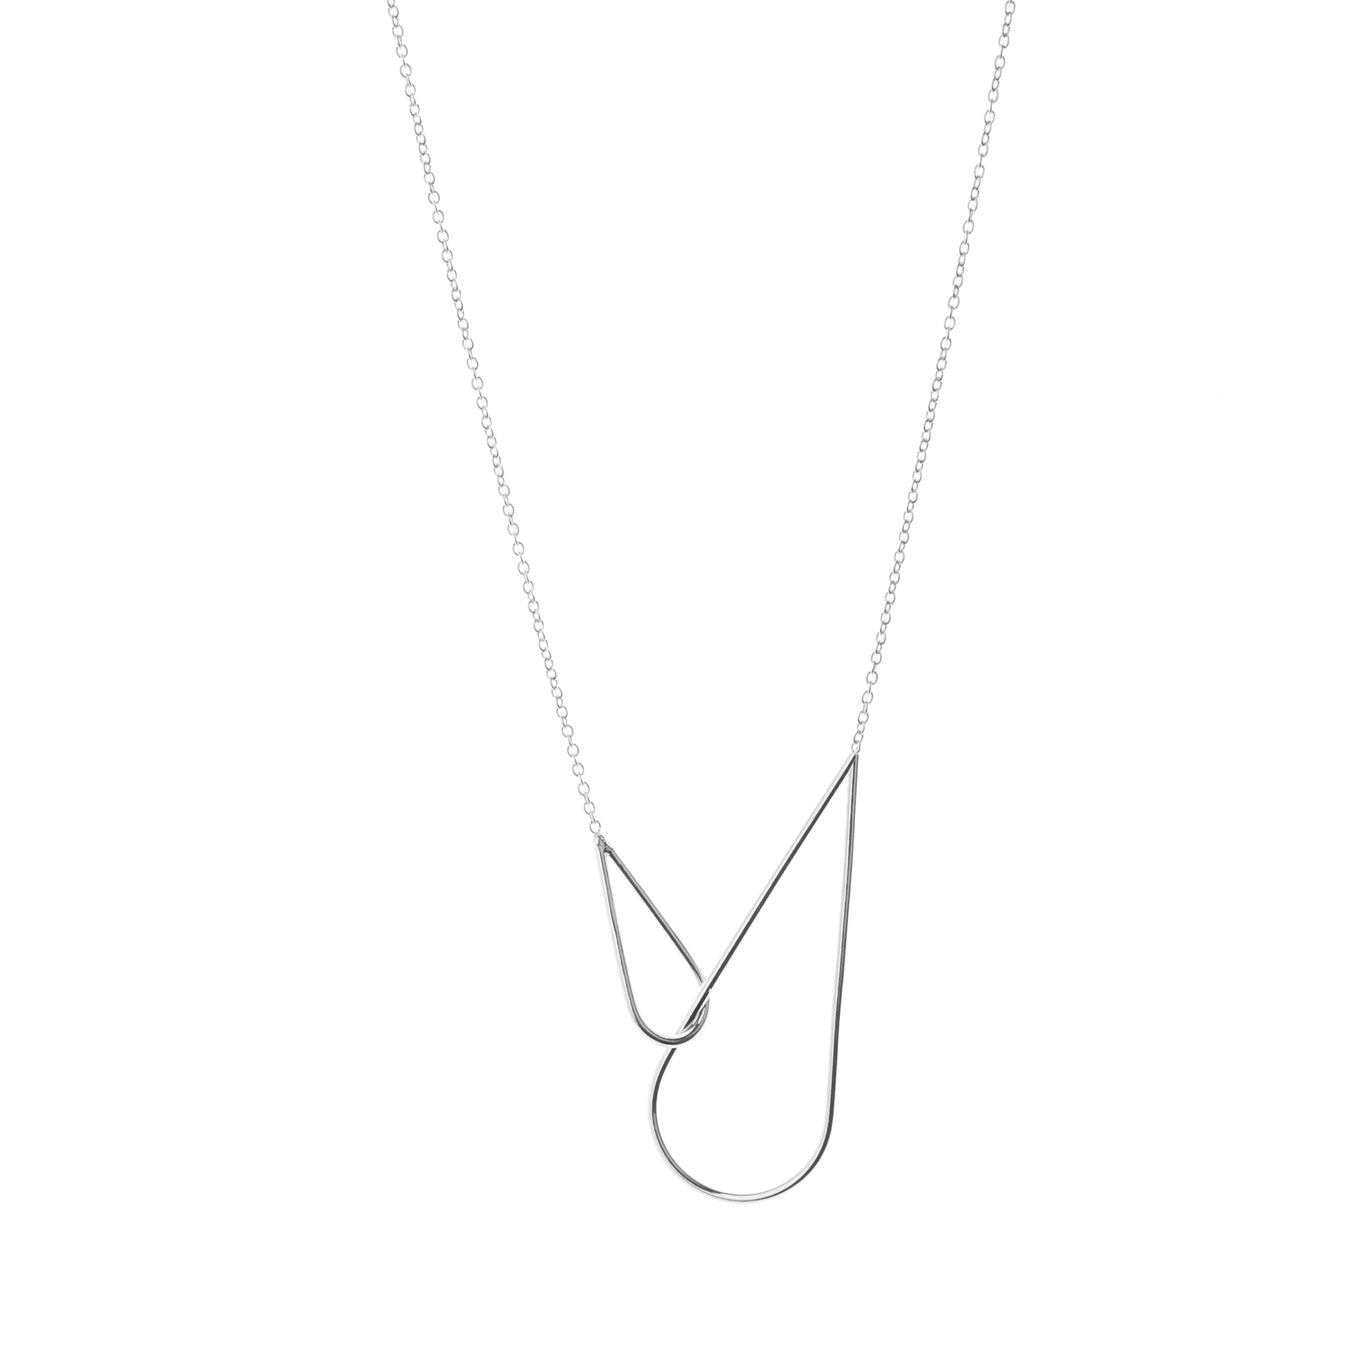 Aurore Havenne Raindrops Necklace Silver bijou minimalist jewel